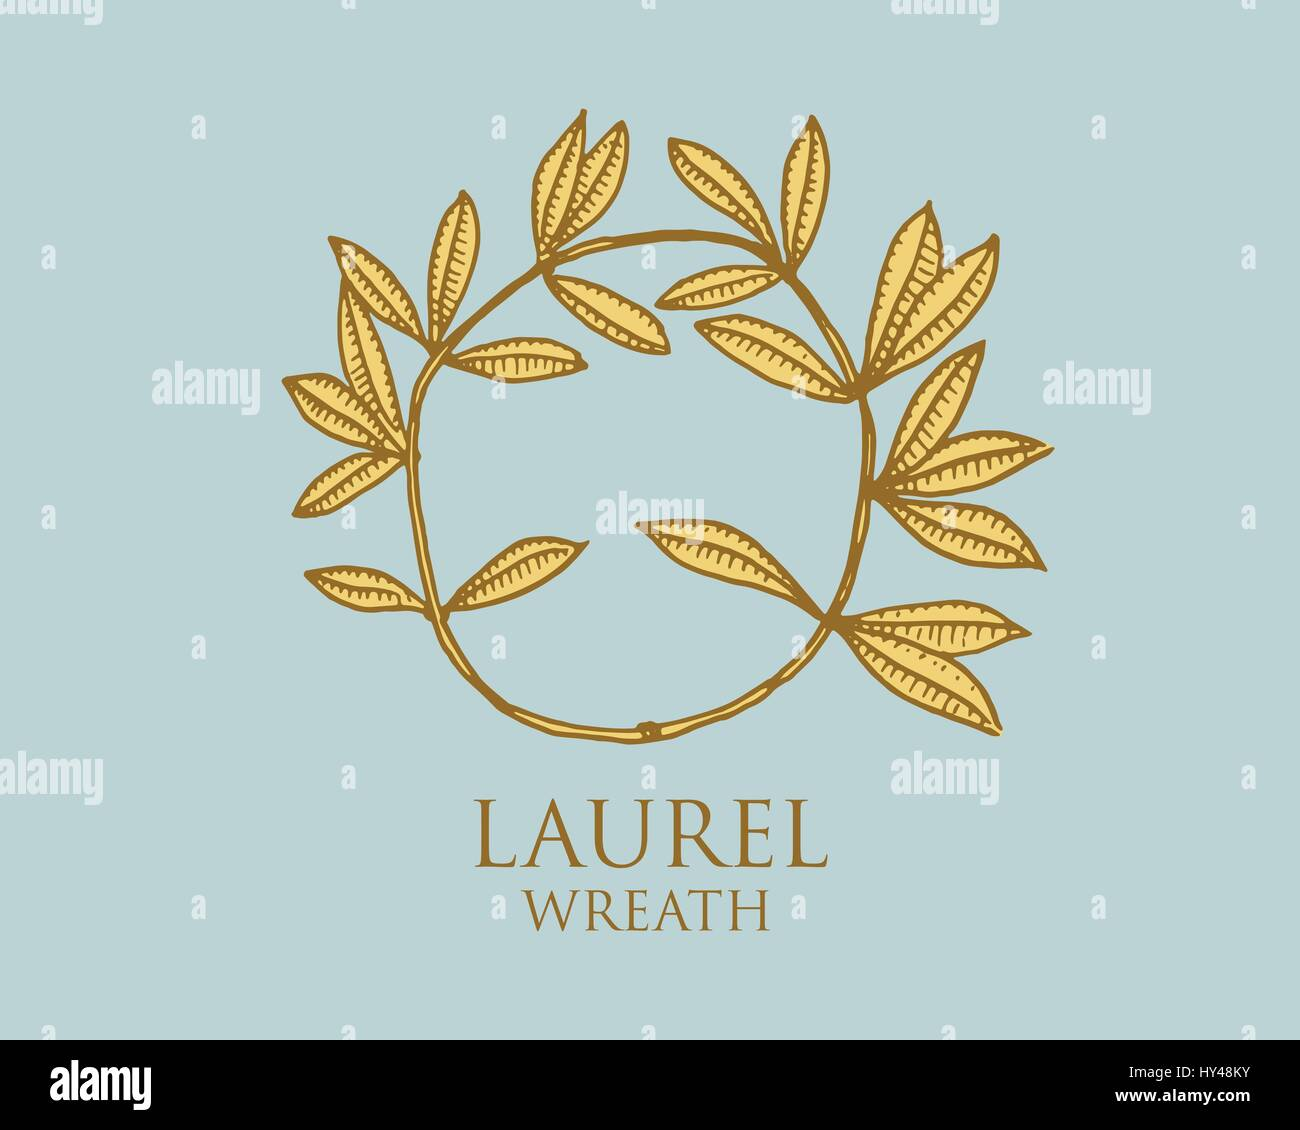 Logo Of Ancient Greece Antique Symbol Laurel Wreath Vintage Engraved Hand Drawn In Sketch Or Wood Cut Style Old Looking Retro